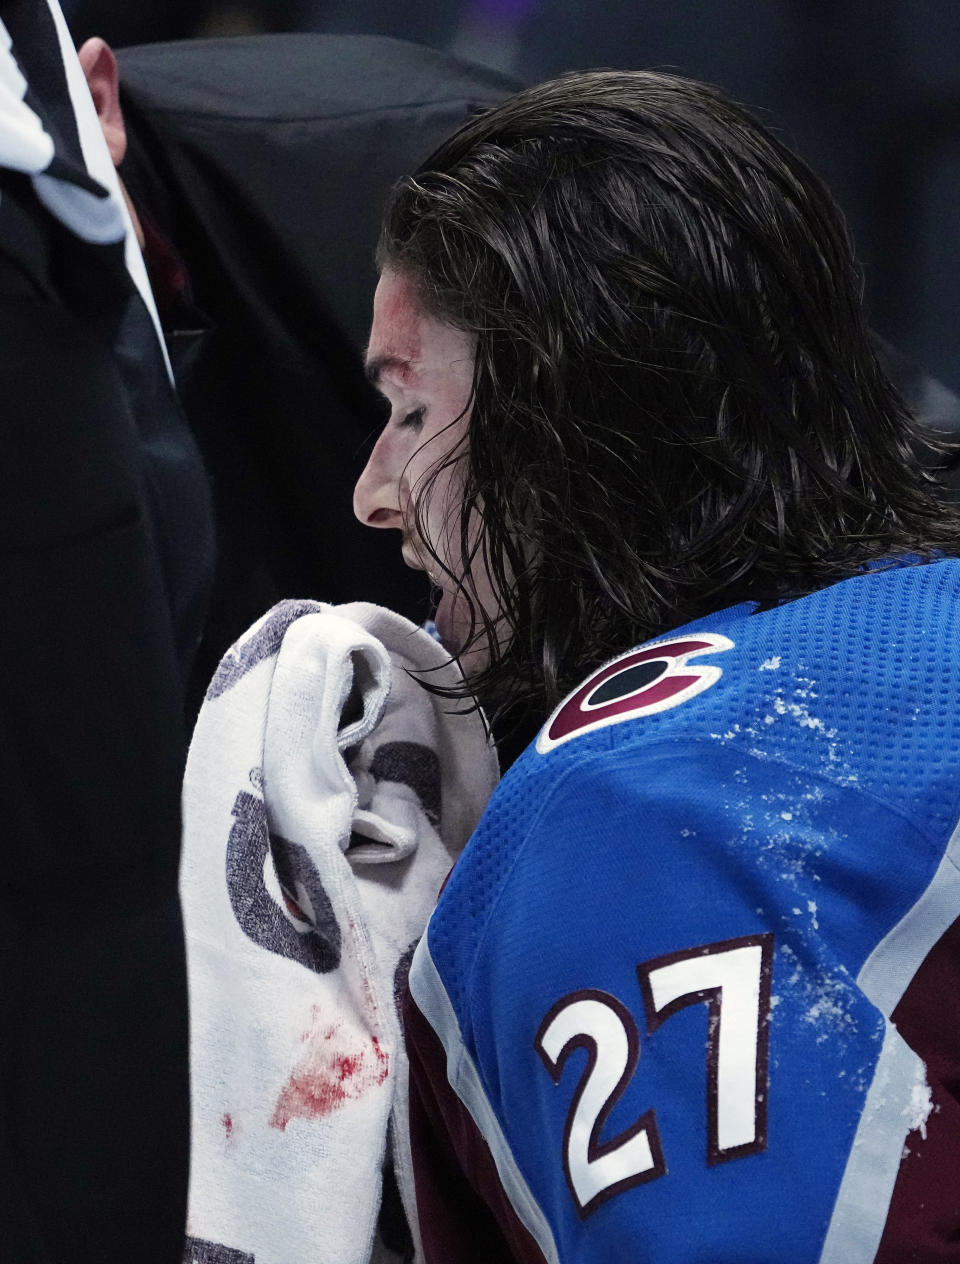 Colorado Avalanche defenseman Ryan Graves (27) wipes blood from his face after a fight against the Vegas Golden Knights in the third period of Game 1 of an NHL hockey Stanley Cup second-round playoff series Sunday, May 30, 2021, in Denver. (AP Photo/Jack Dempsey)